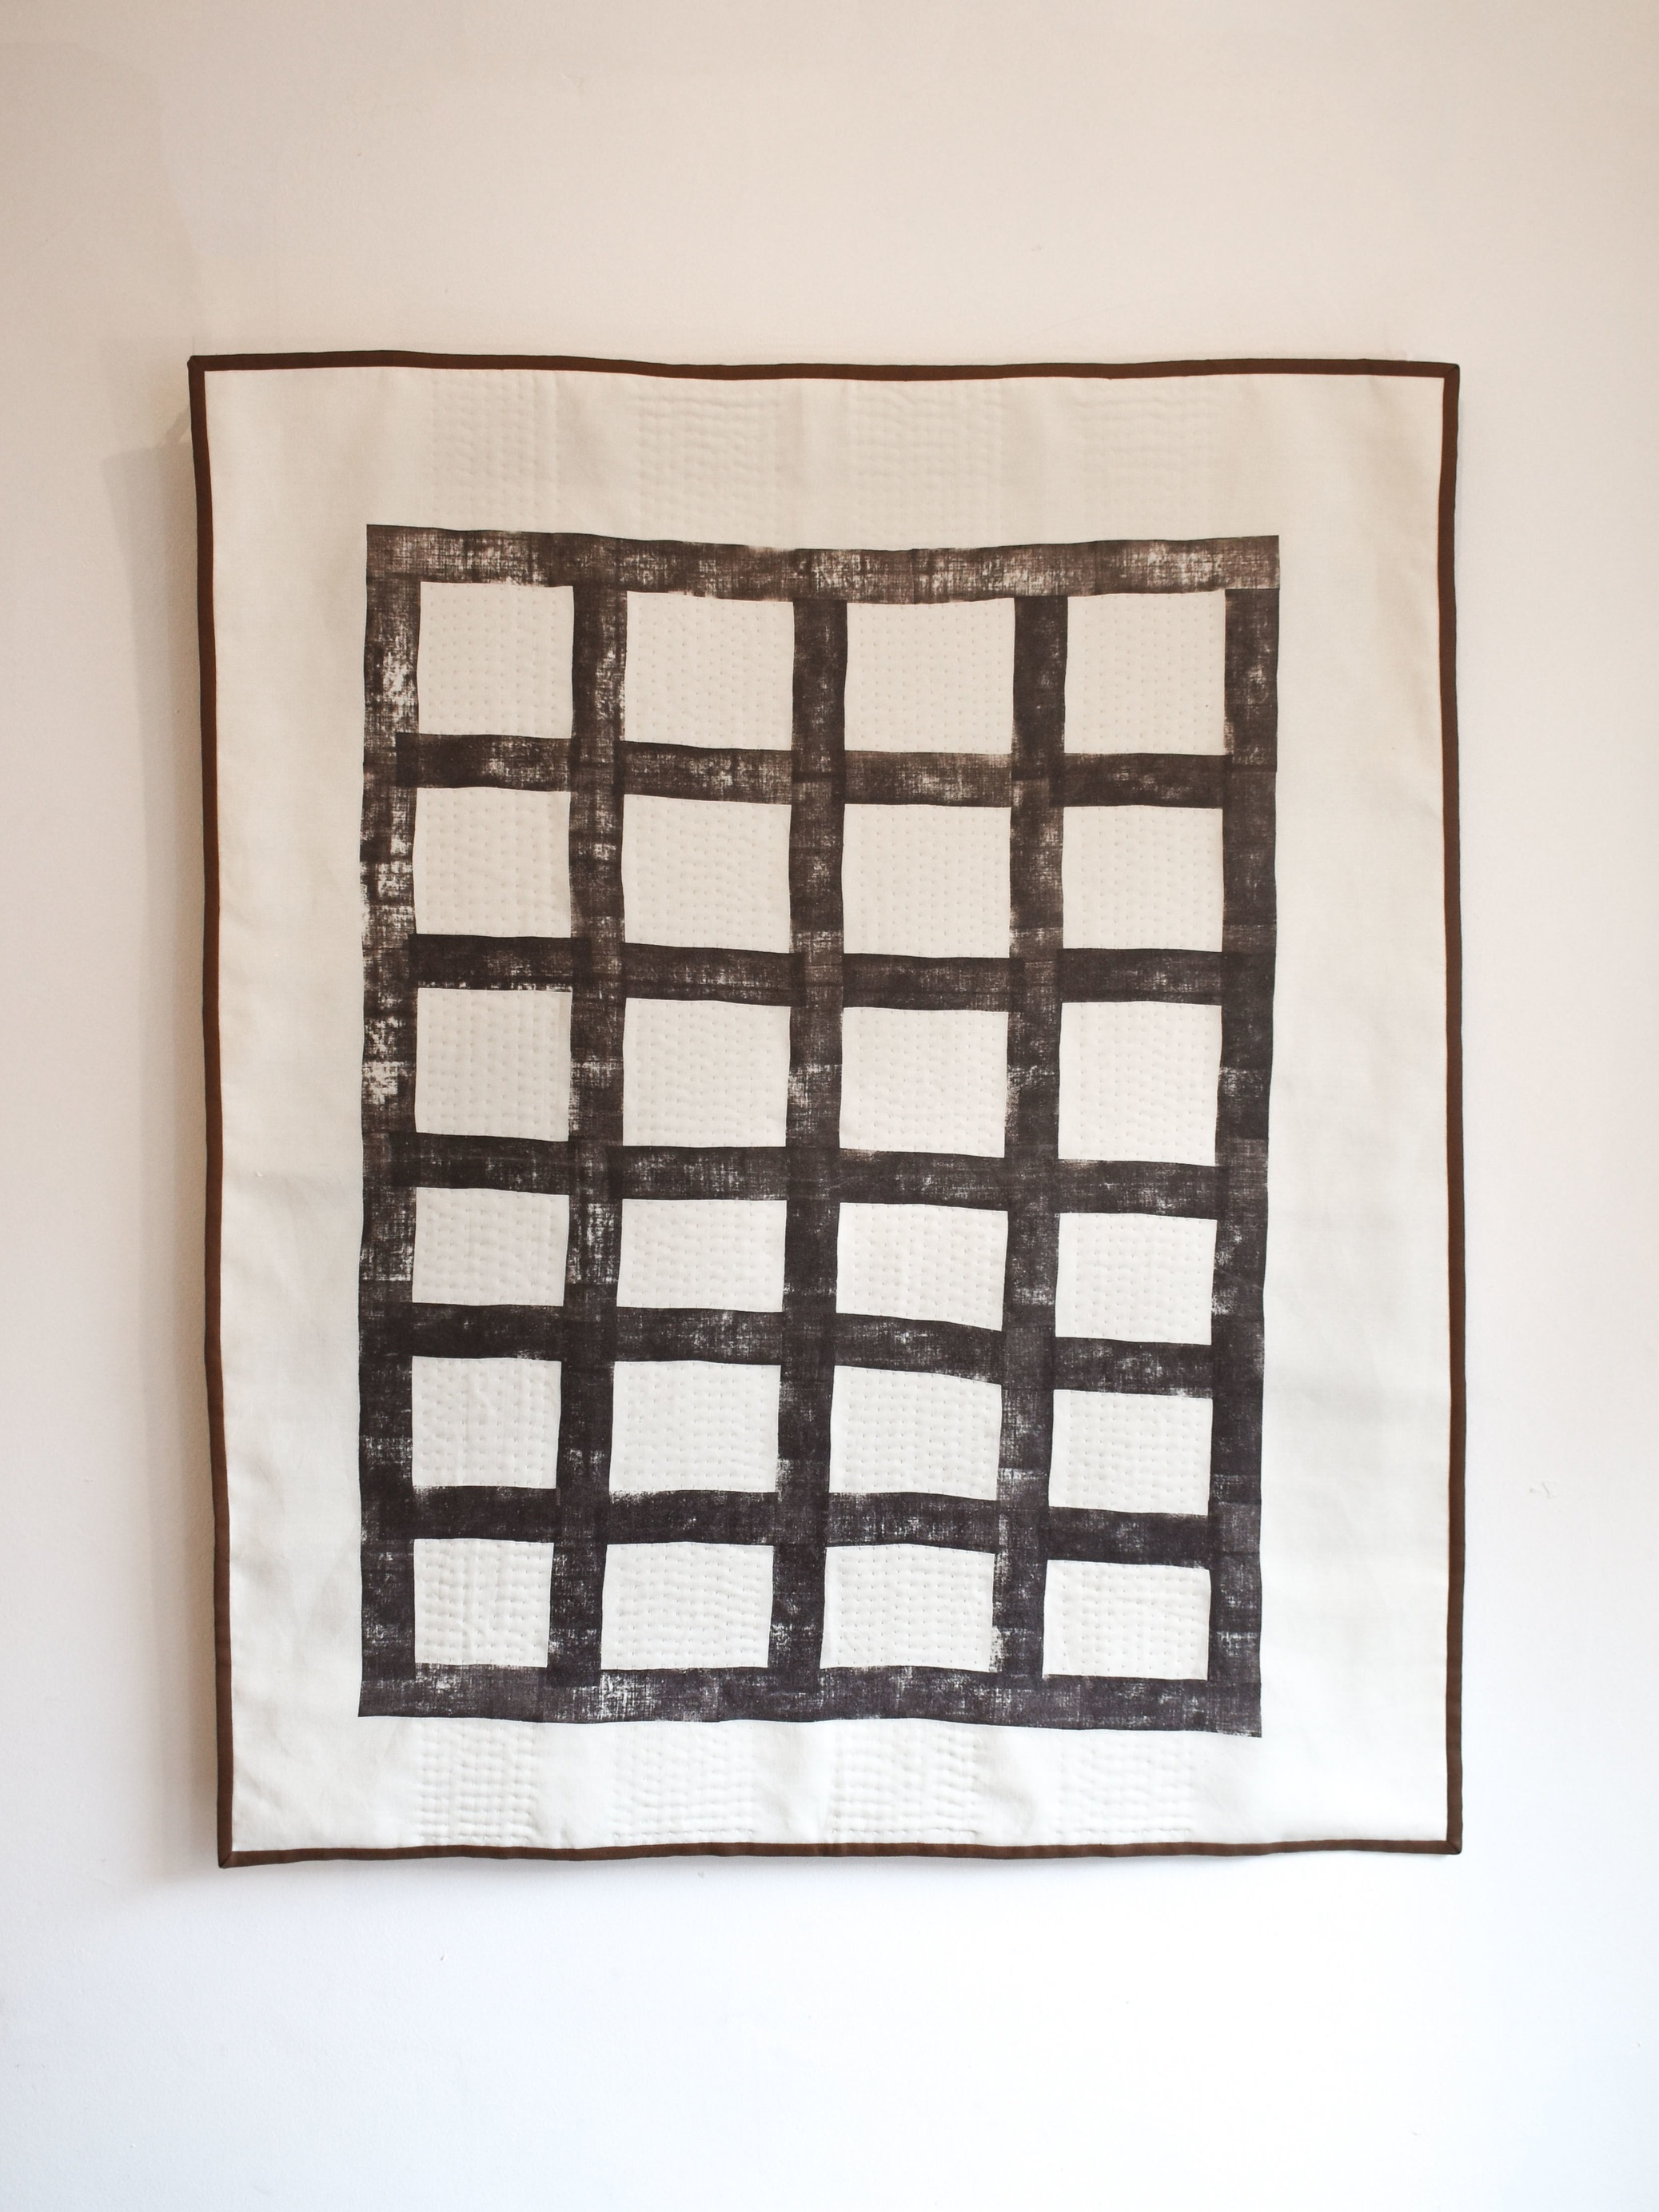 Net - 120 x 100 cm  block printed & hand stitched linen with linen backing